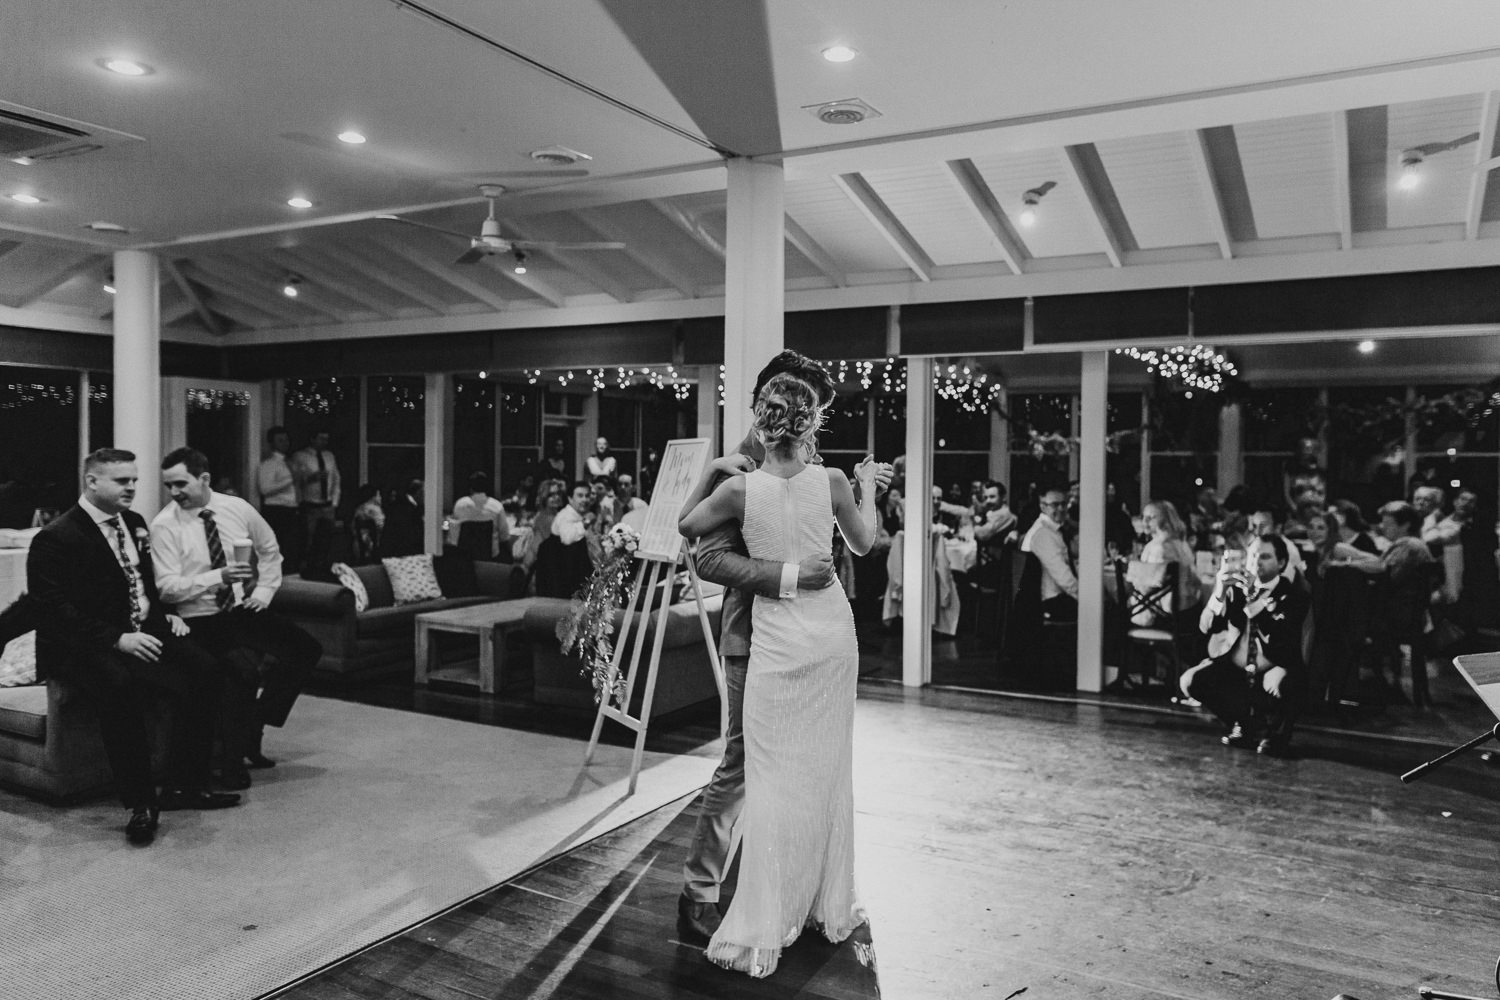 briars-country-lodge-wedding-bowral-nsw-miriam-andy-98